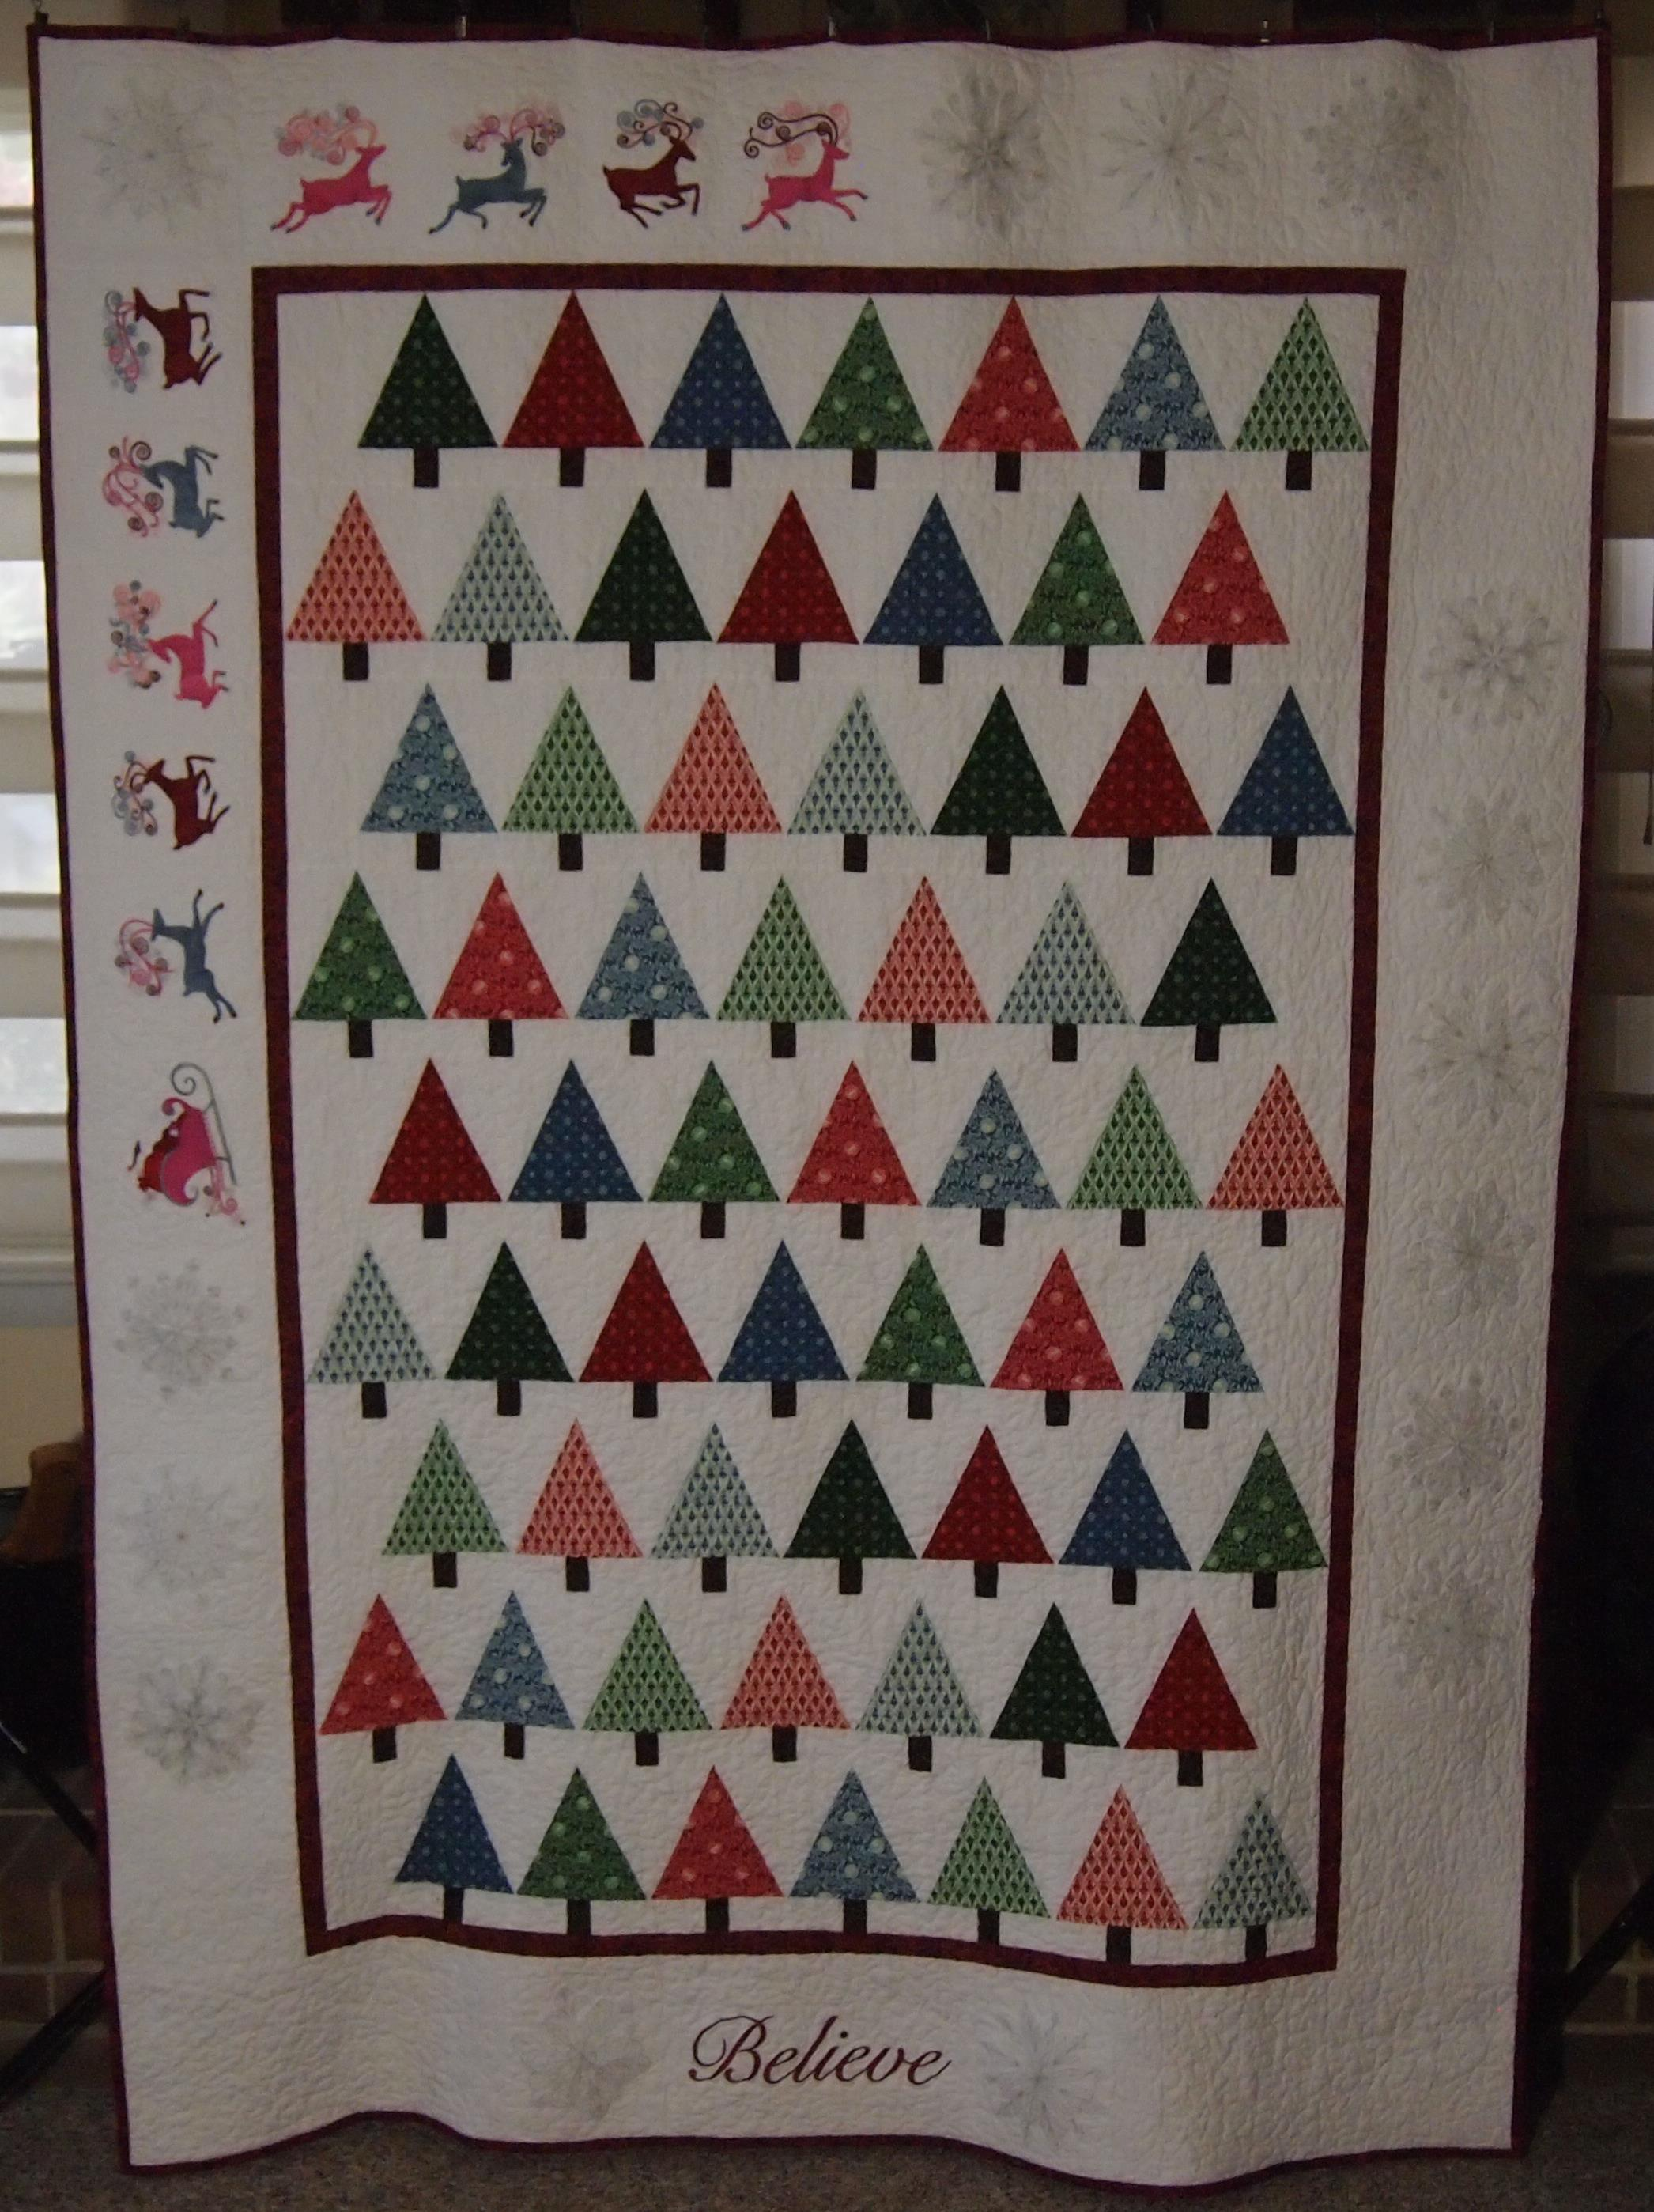 It's December! Time for Christmas Tree Quilts